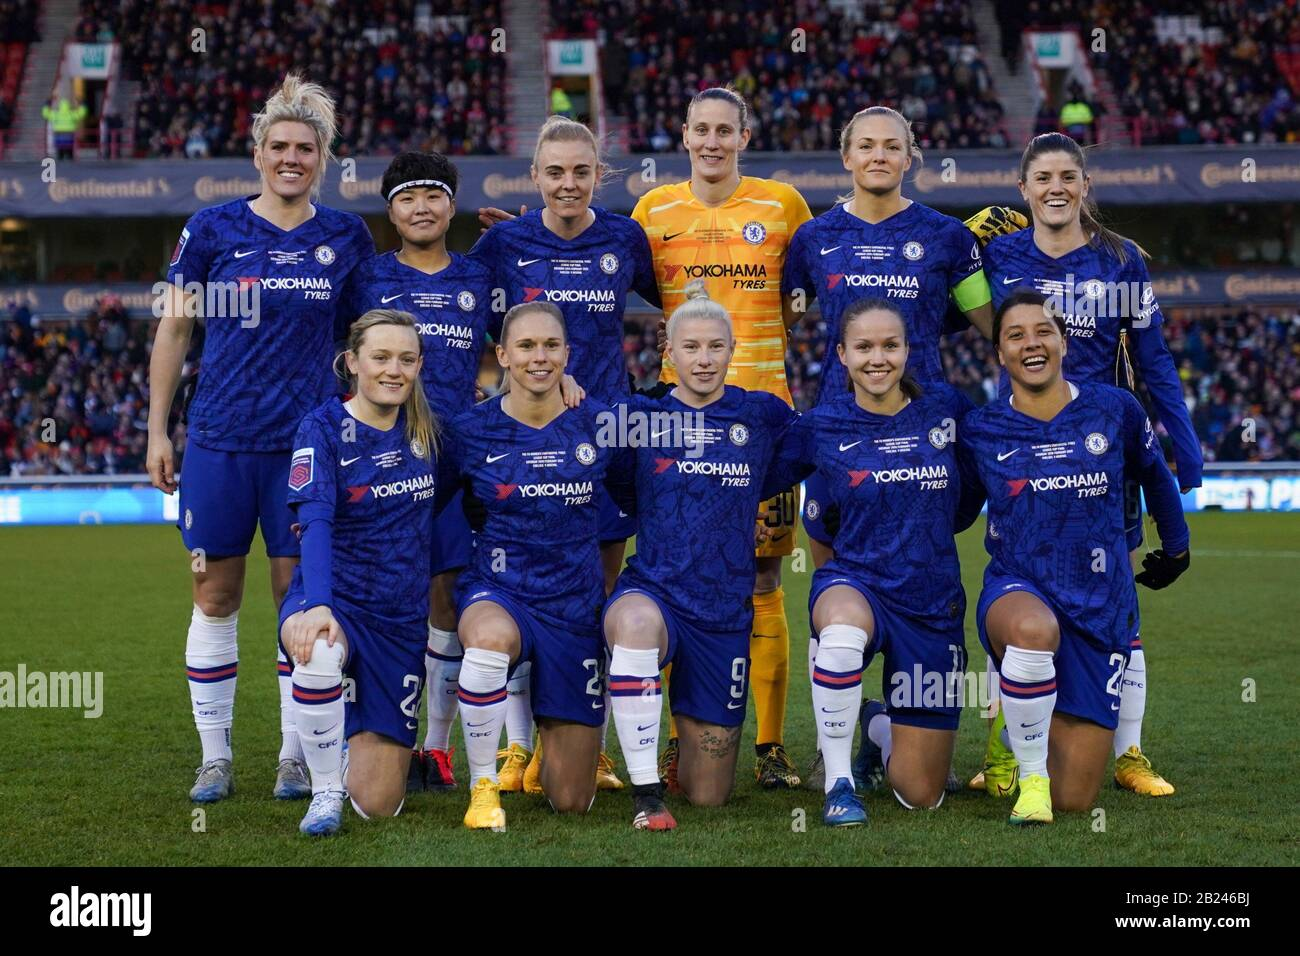 Nottingham England Feb 28th Starting Xi Of Chelsea During The 2020 Fa Women Continental Tyres League